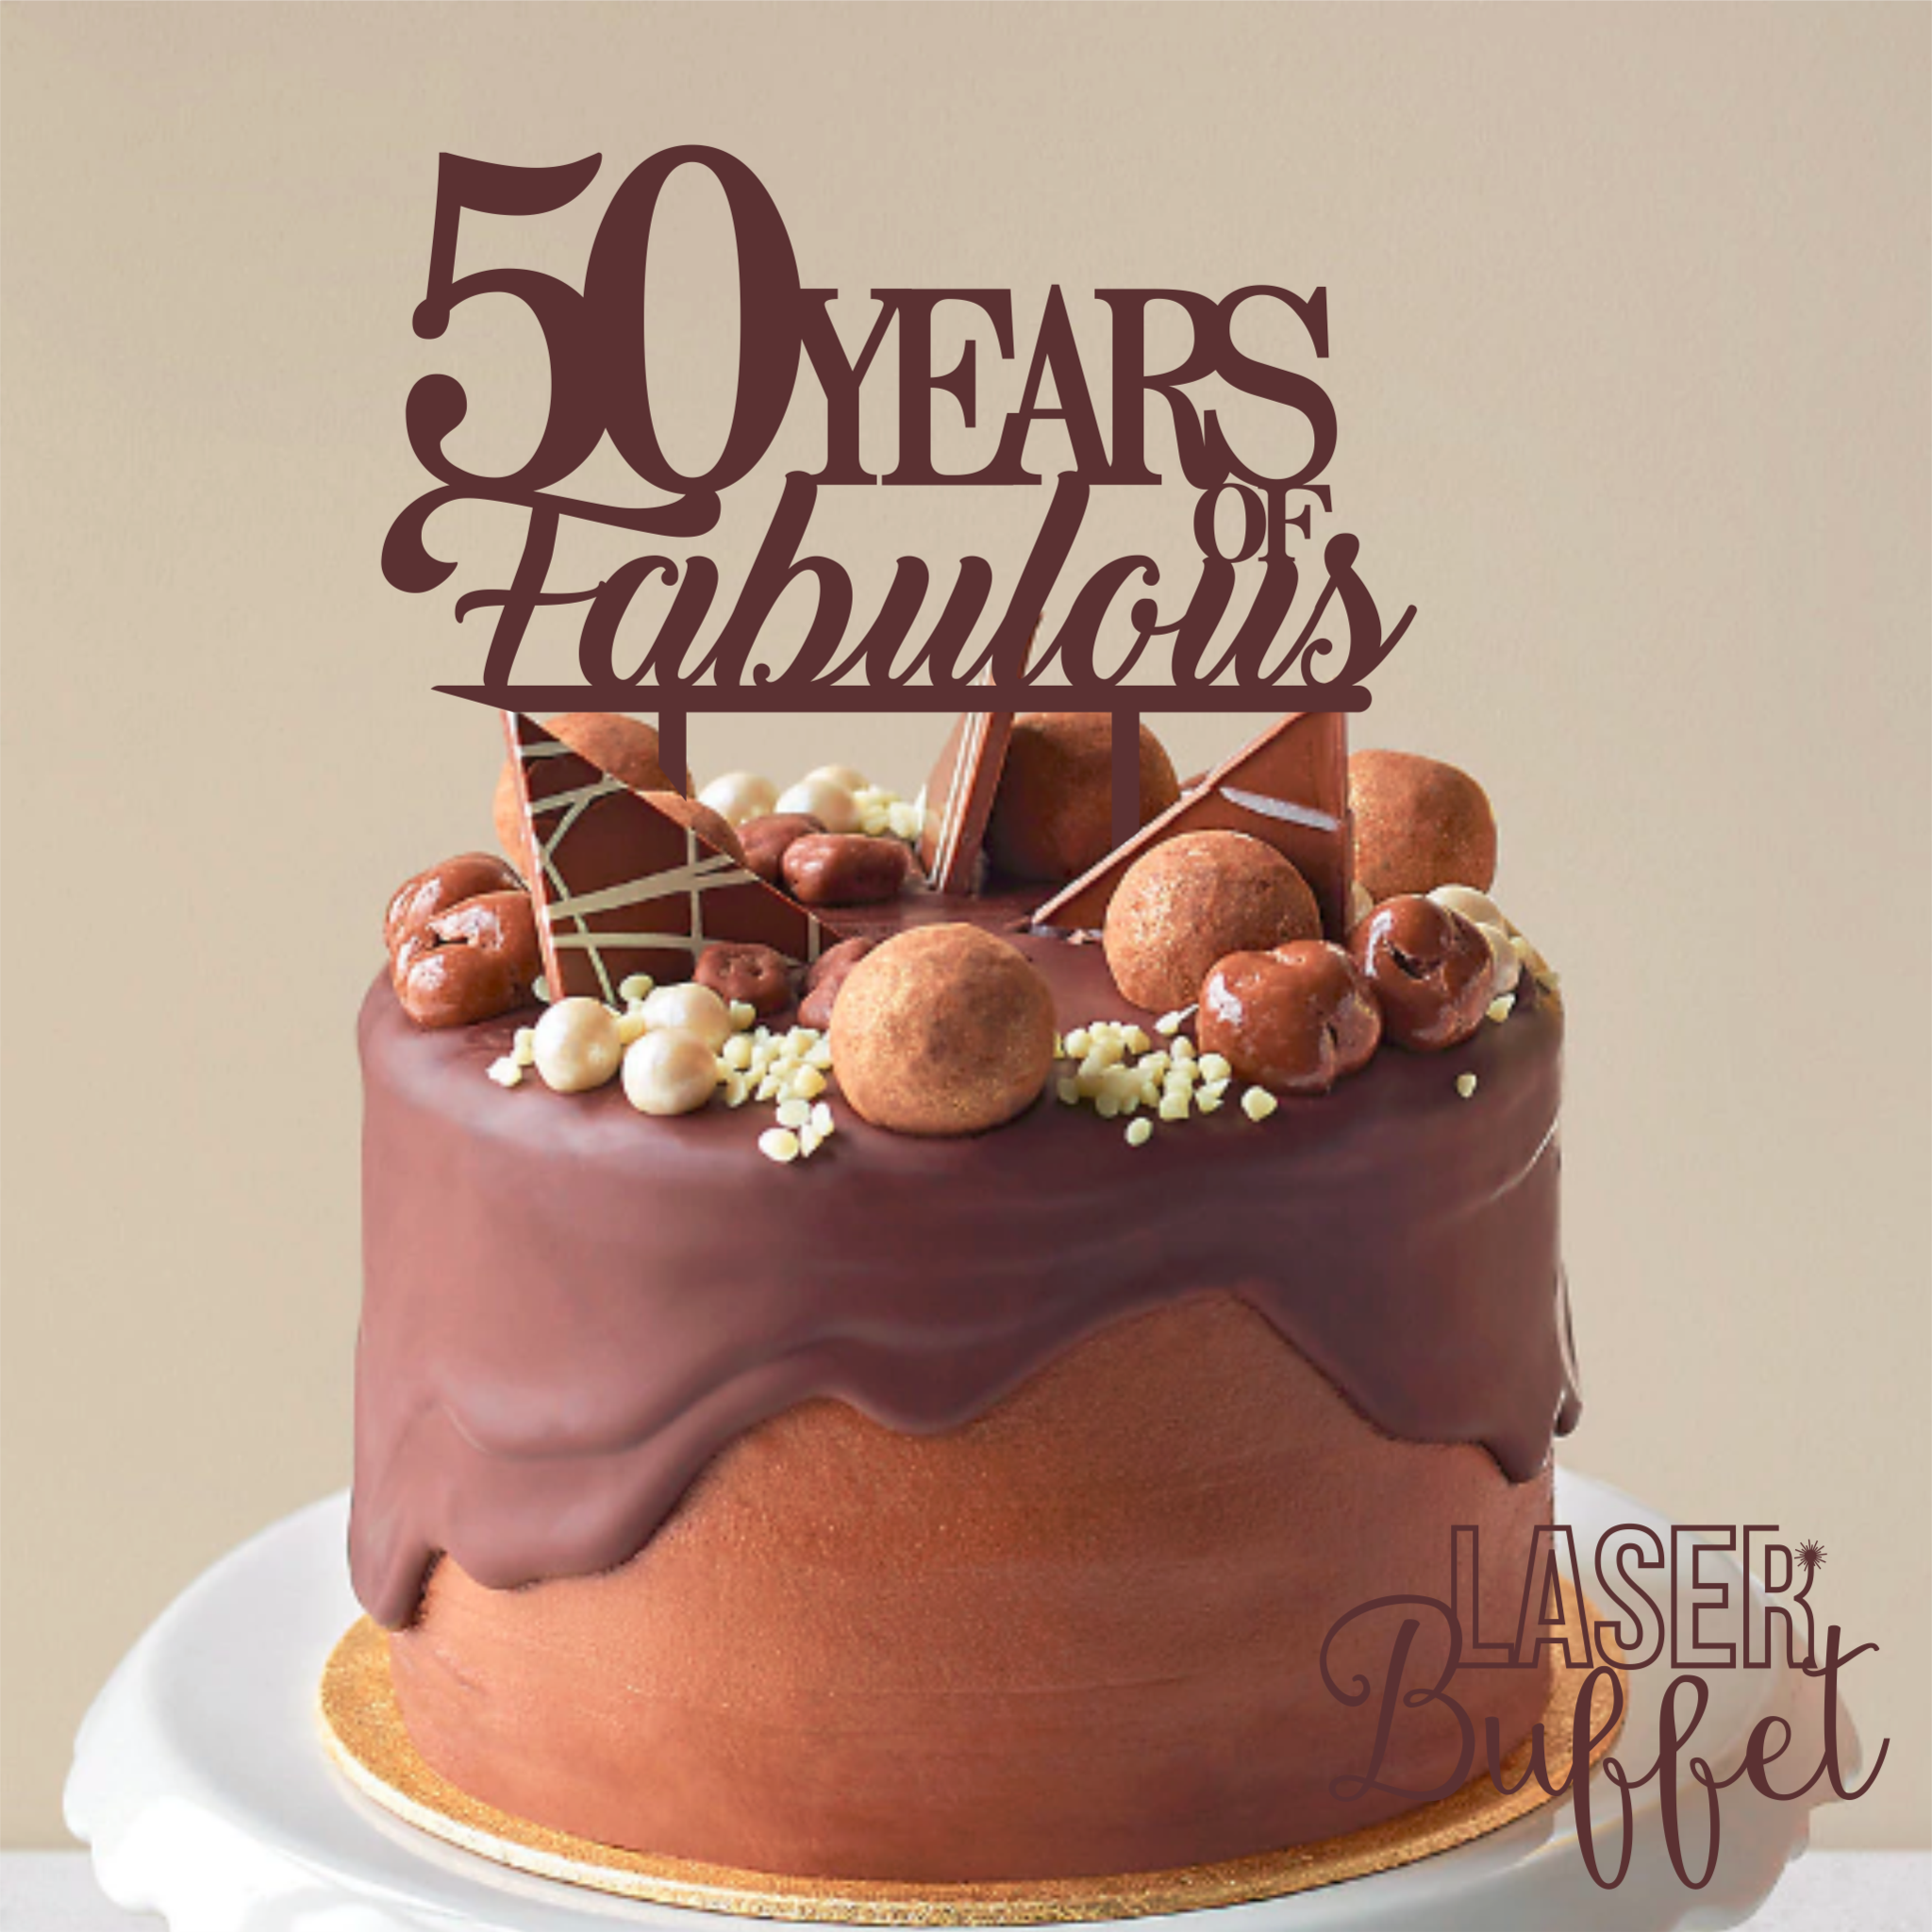 Laser Cut 50 Years Fabulous Cake Topper Template Shop designs